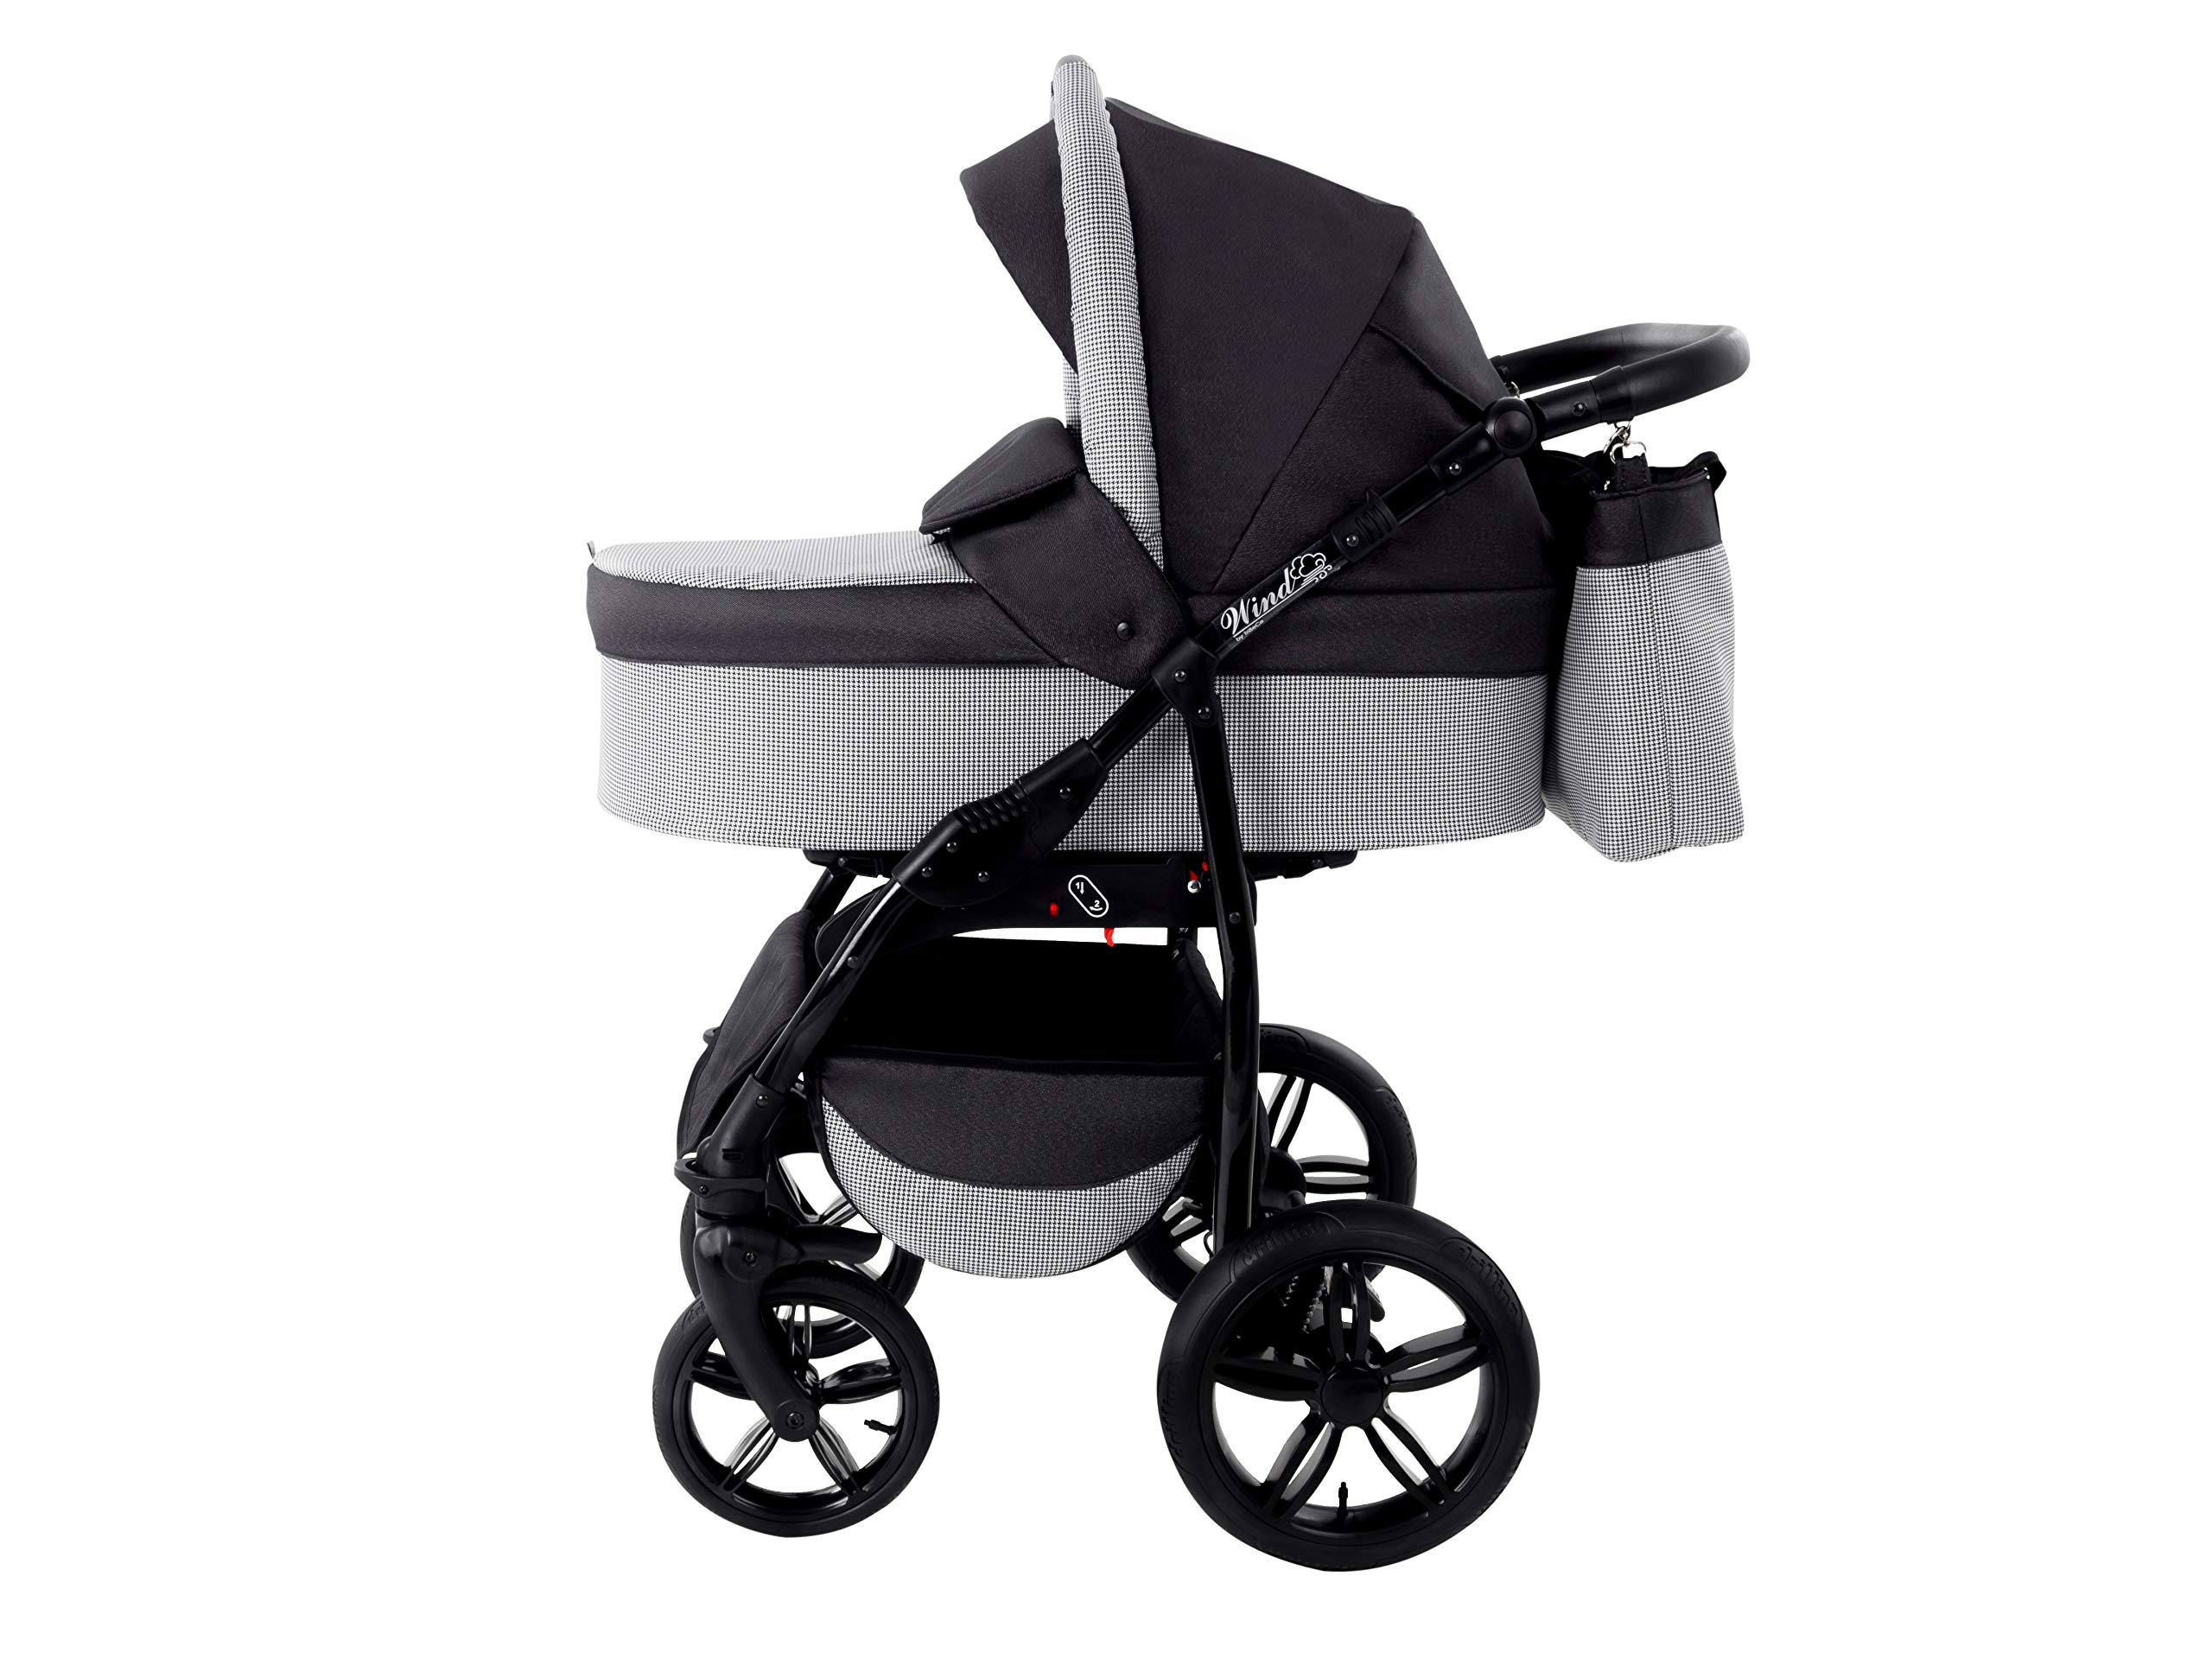 Baby Pram Zeo Wind 3in1 Set - All You Need! carrycot Gondola Buggy Sport Part Pushchair car seat (54) Zeo 3 in 1 combination stroller complete set, with reversible seat units to the buggy, child car seat or baby carriage The baby carriage is suitable for babies from 0 months to 3 years (0-15 kg) Has 360 ° swiveling wheels, four-fold suspension, four-stage backrest, five-position adjustable footrest and a five-point safety belt 4